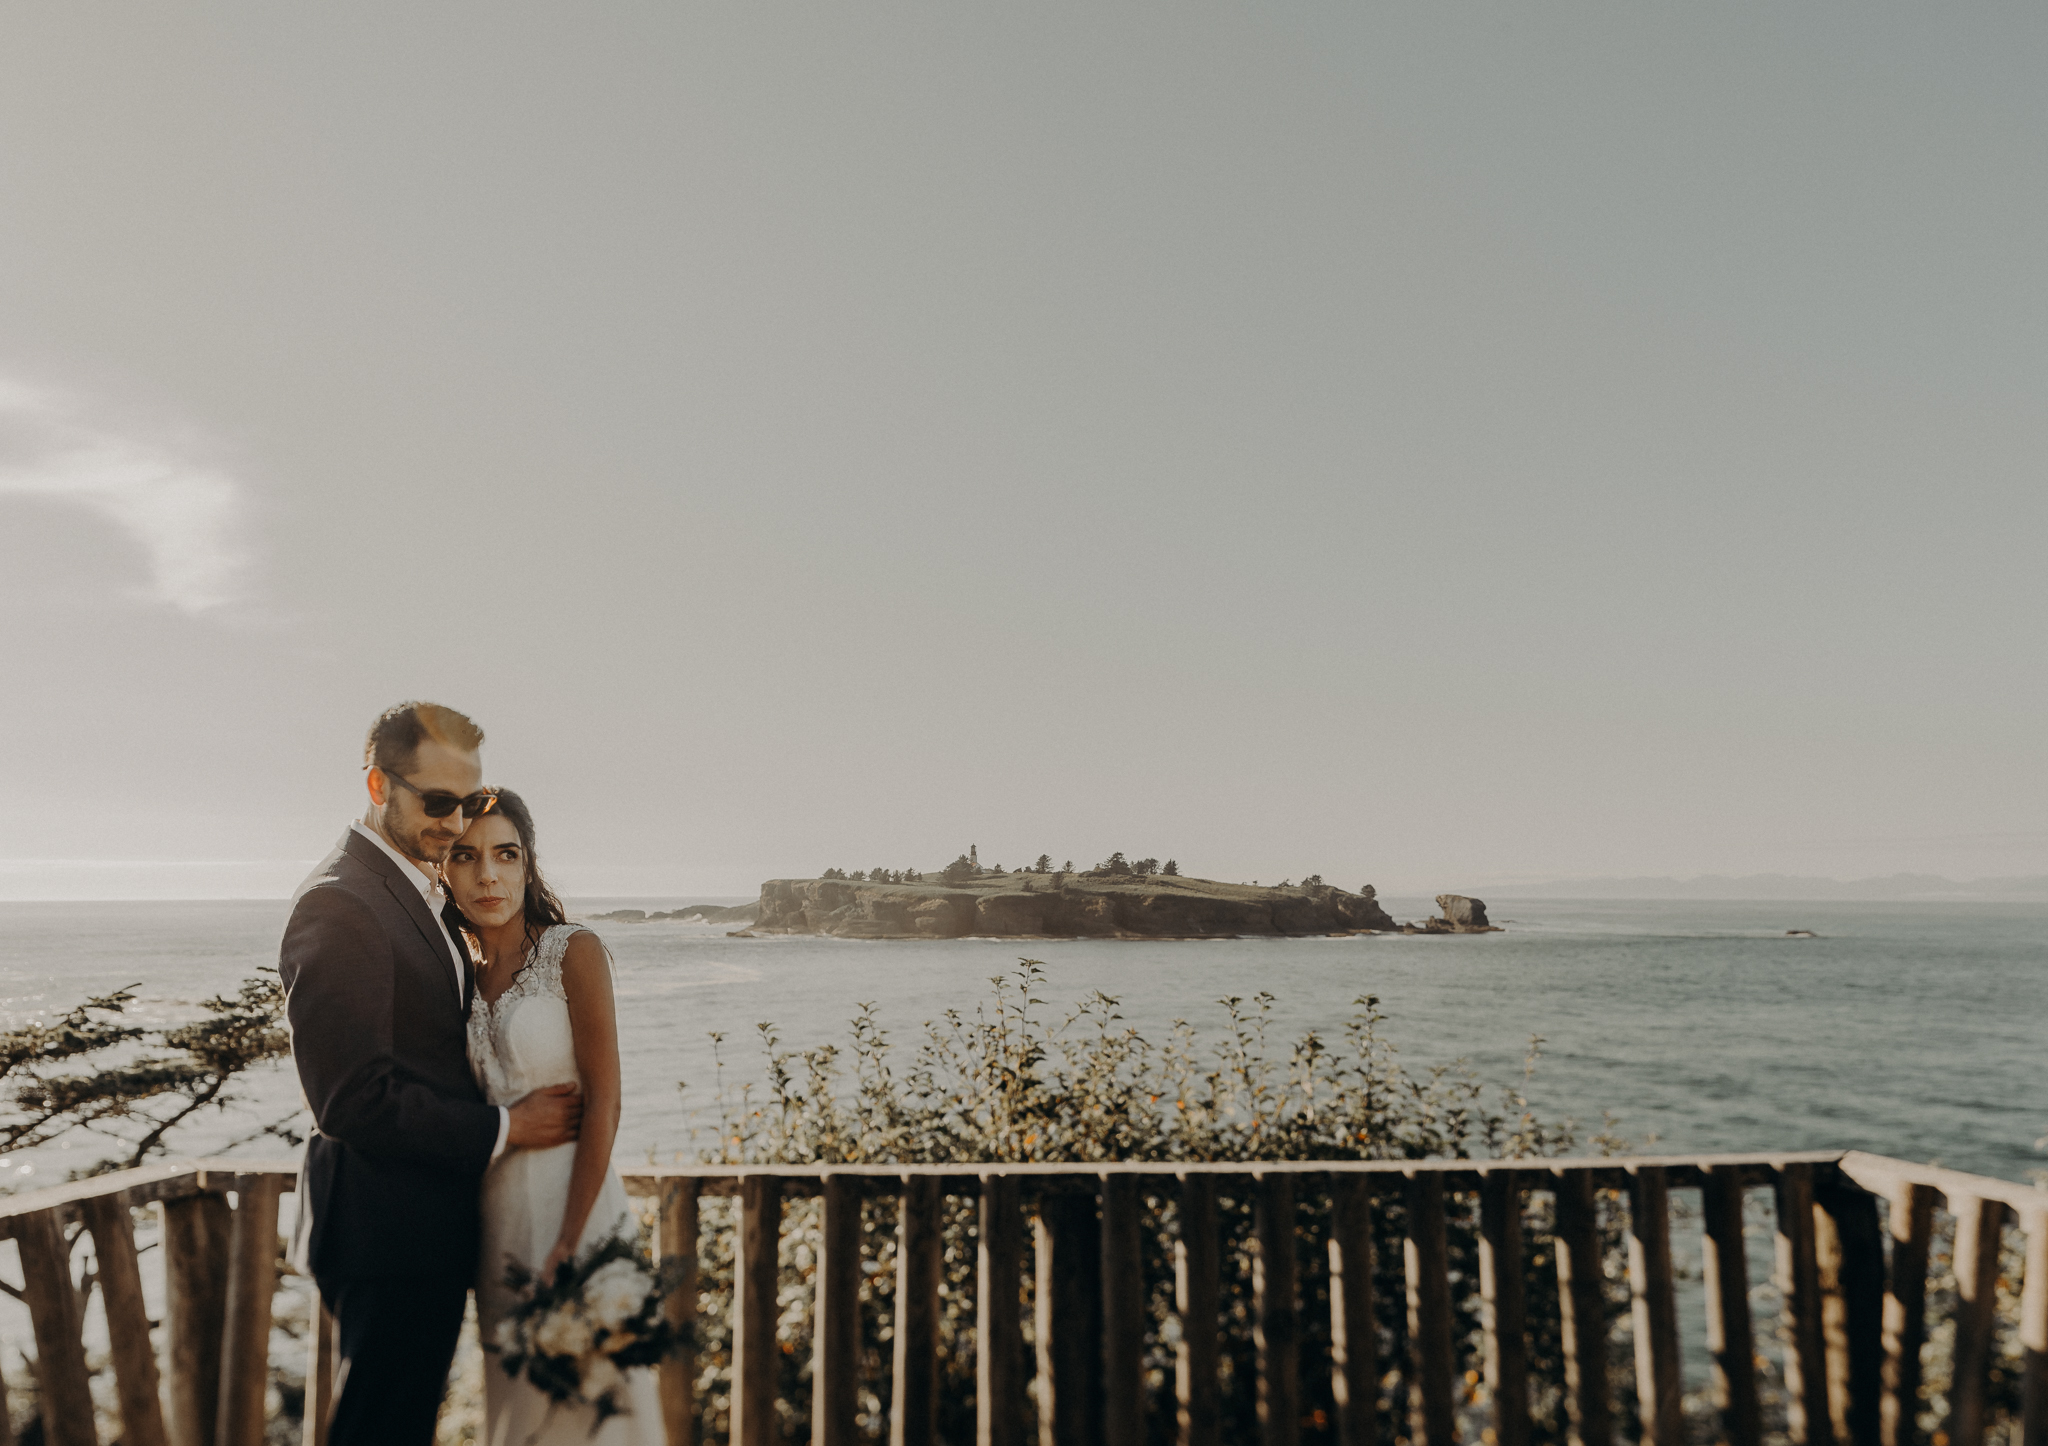 Isaiah + Taylor Photography - Cape Flattery Elopement, Olympia National Forest Wedding Photographer-071.jpg